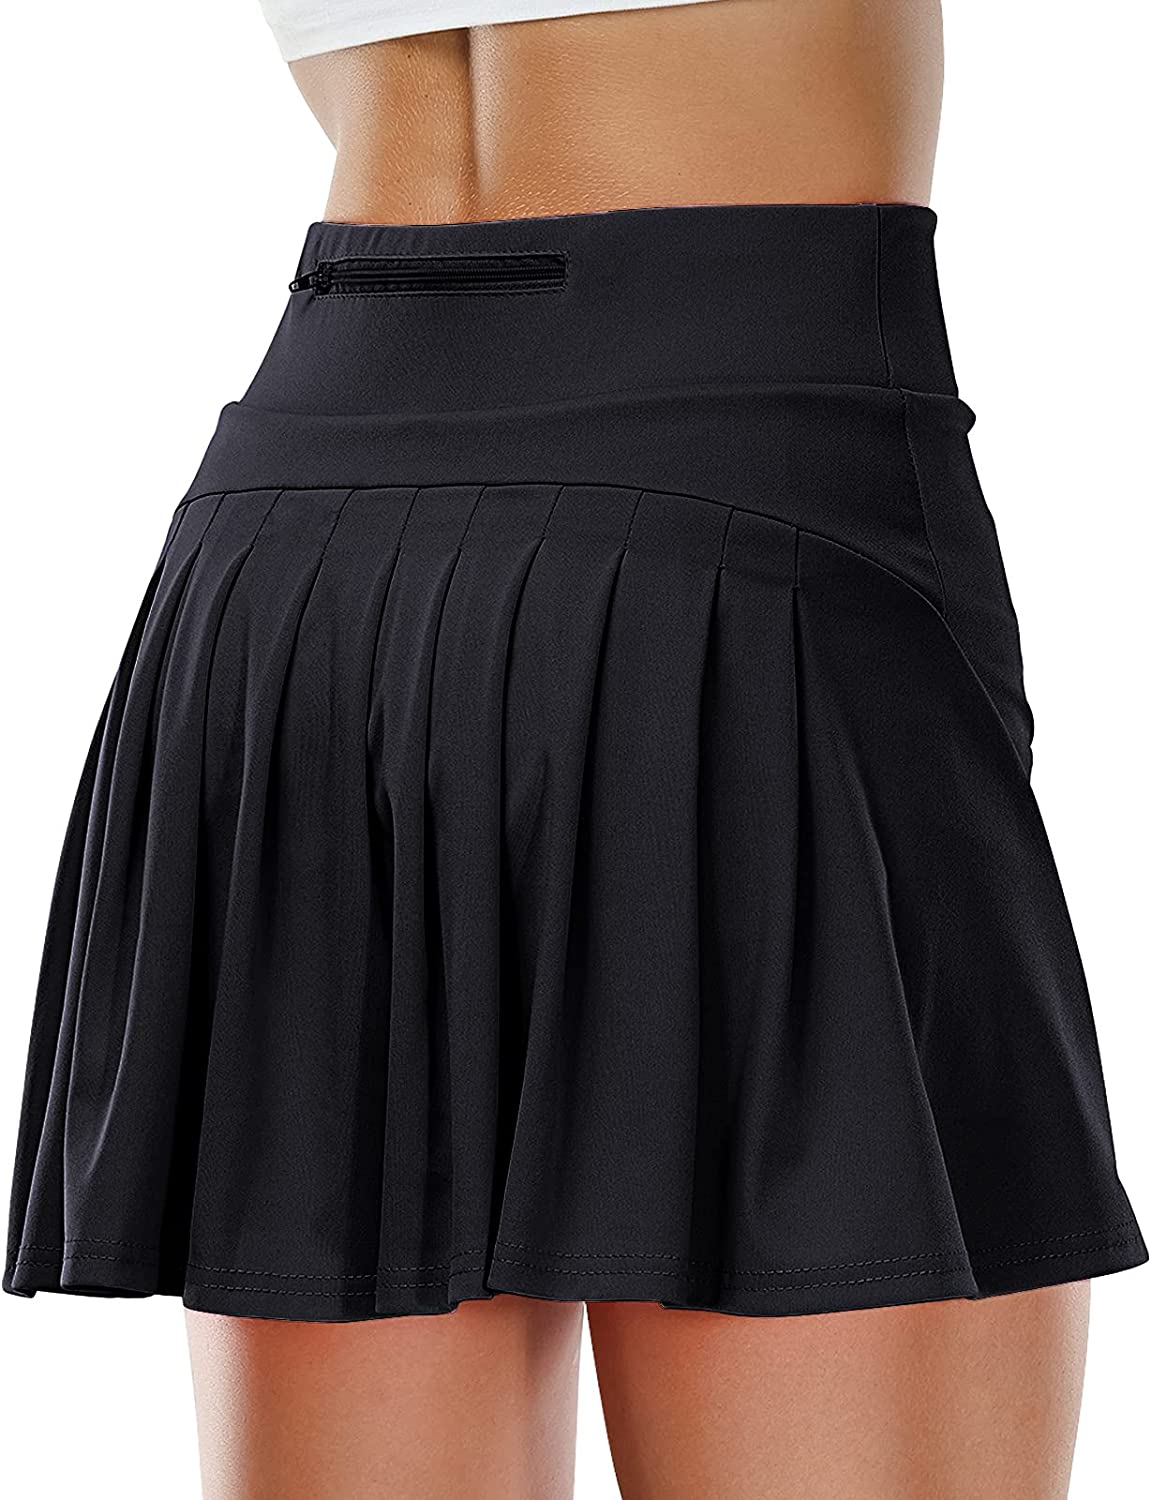 Time sale Hertiiy Pleated Tennis Skirts for Golf Women Pockets with Cheap sale Skorts